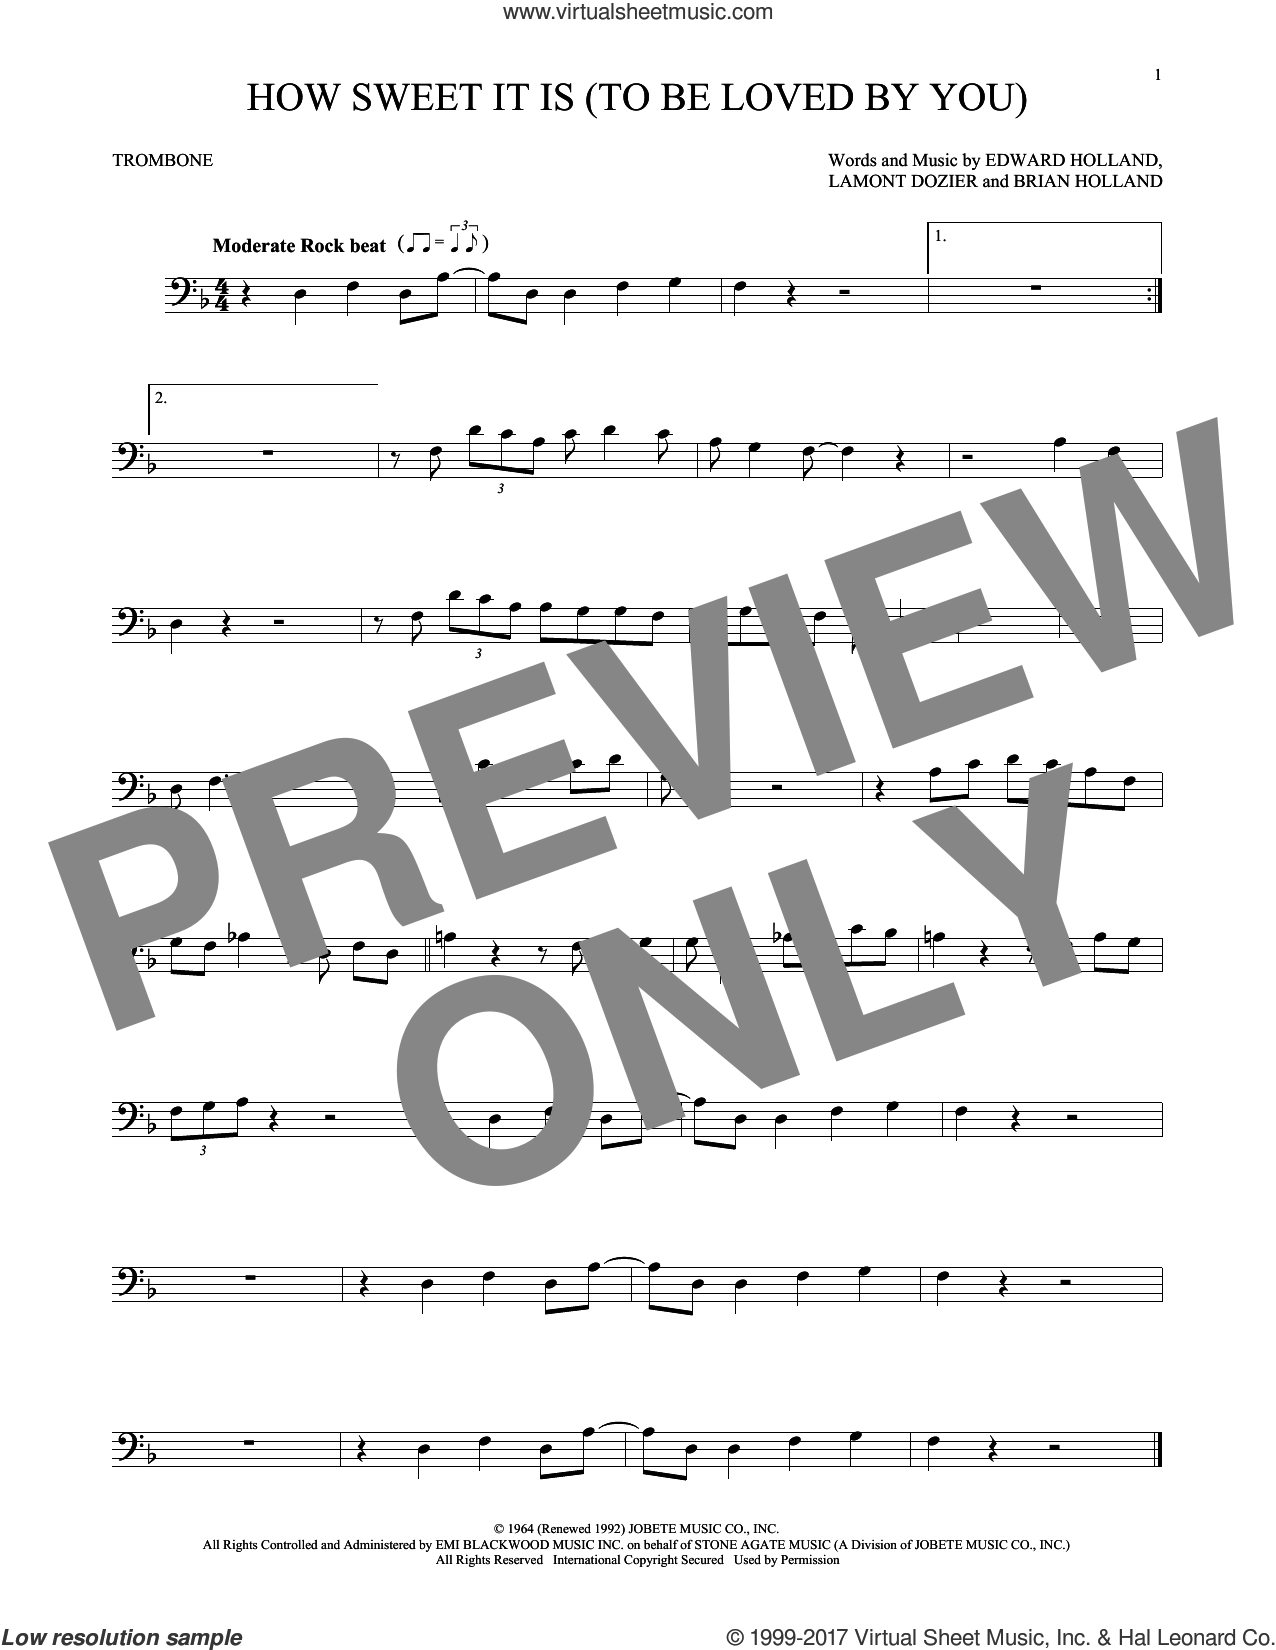 How Sweet It Is (To Be Loved By You) sheet music for trombone solo by James Taylor, Marvin Gaye, Brian Holland, Eddie Holland and Lamont Dozier, intermediate skill level